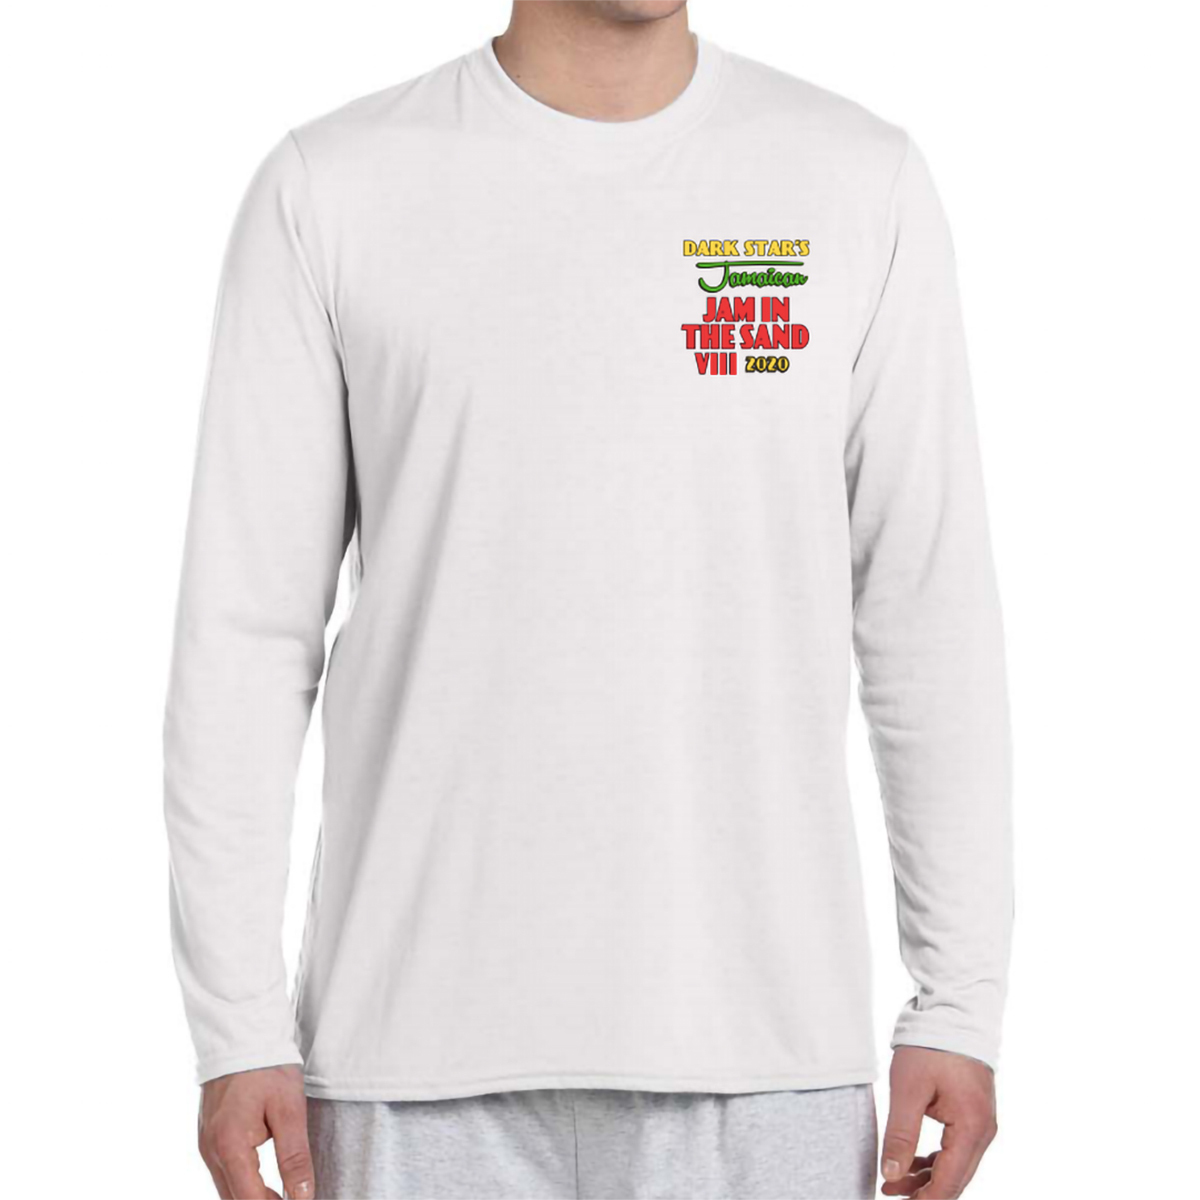 DSO Jam in the Sand Performance-Wear Long Sleeve